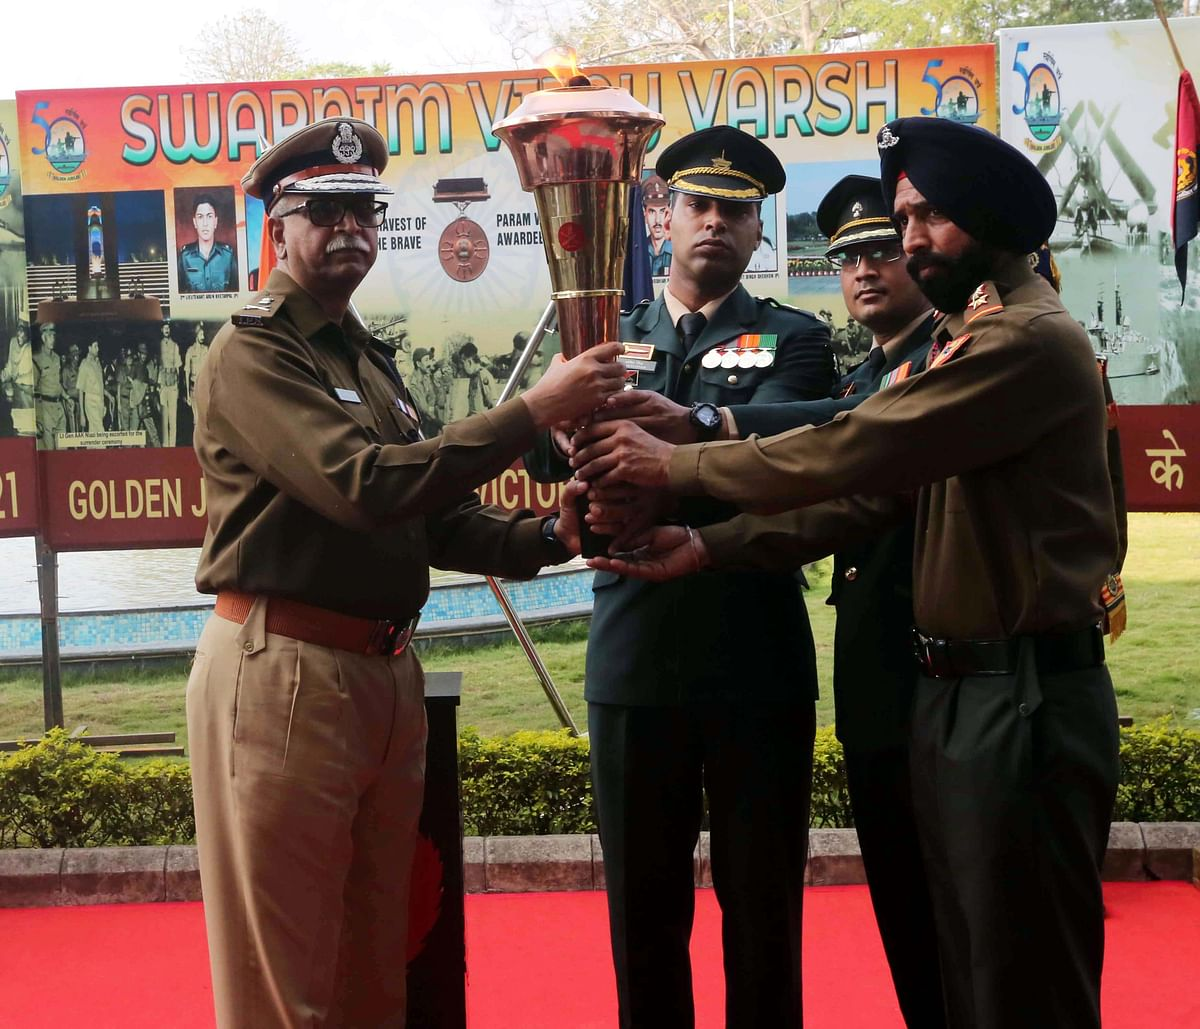 DGP Vivek Johri welcoming the Victory Flame at police headquarters in Bhopal on Wednesday.